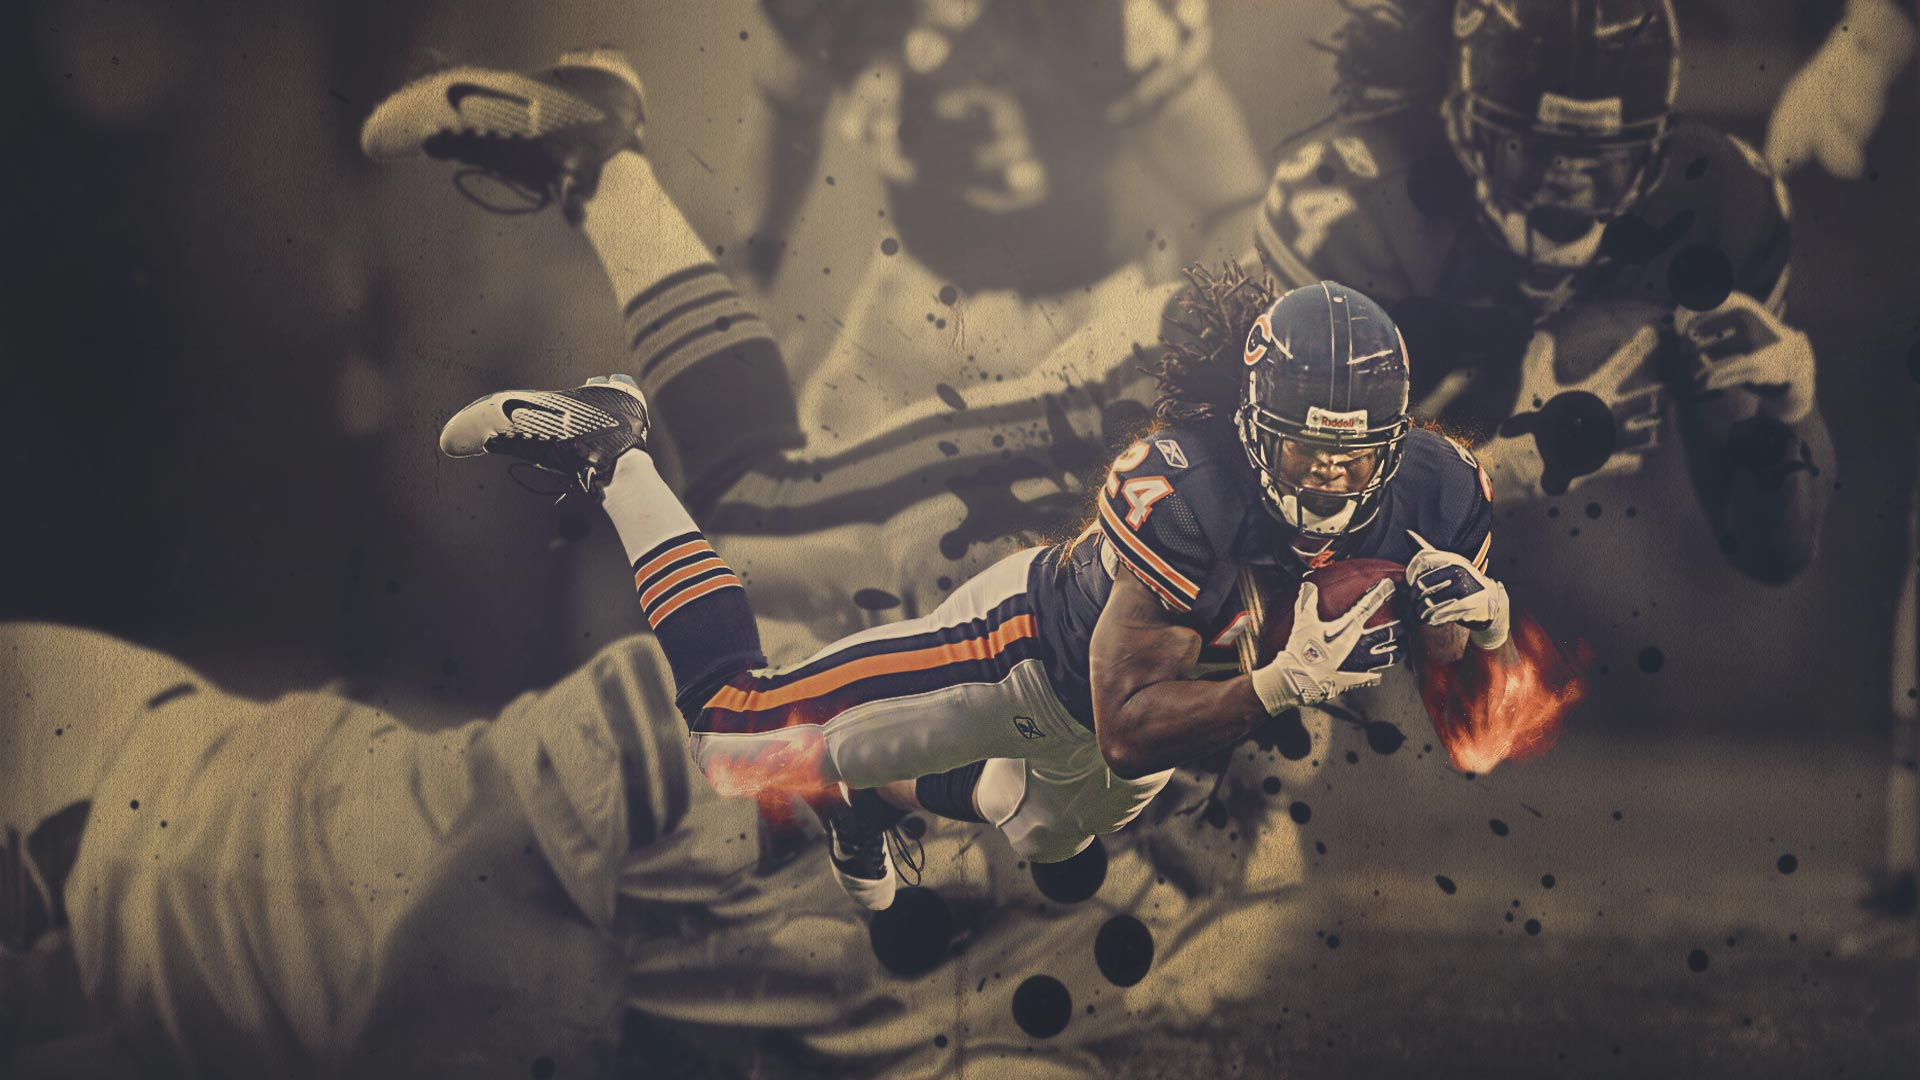 New Chicago Bears wallpaper background Chicago Bears wallpapers 1920x1080